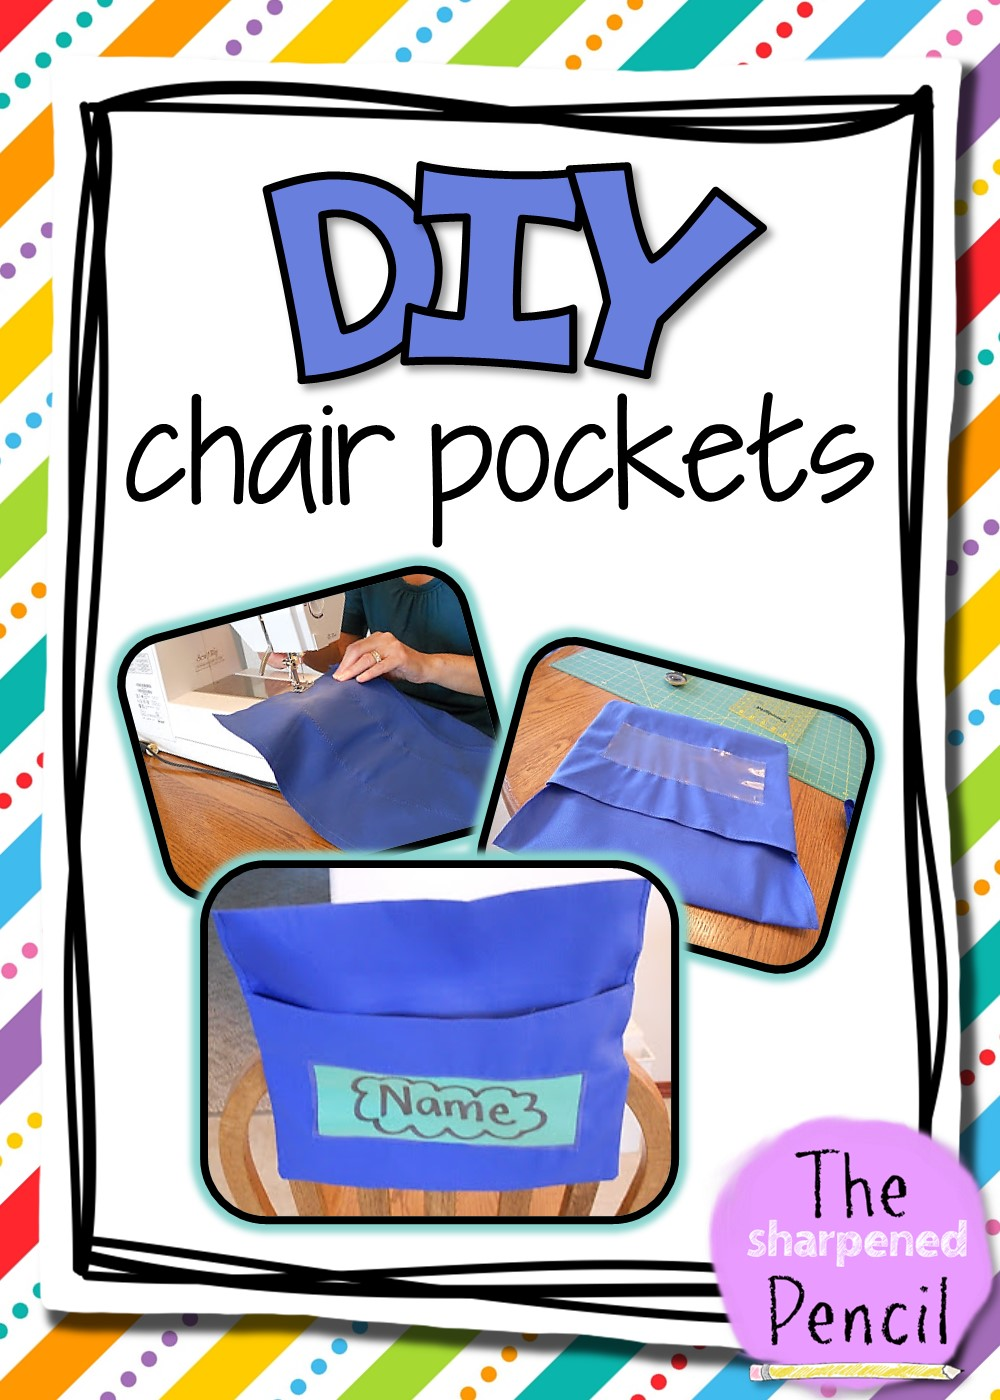 Chair Pockets. Happy Summer everyone!  sc 1 st  The Sharpened Pencil & The Sharpened Pencil: Chair Pockets